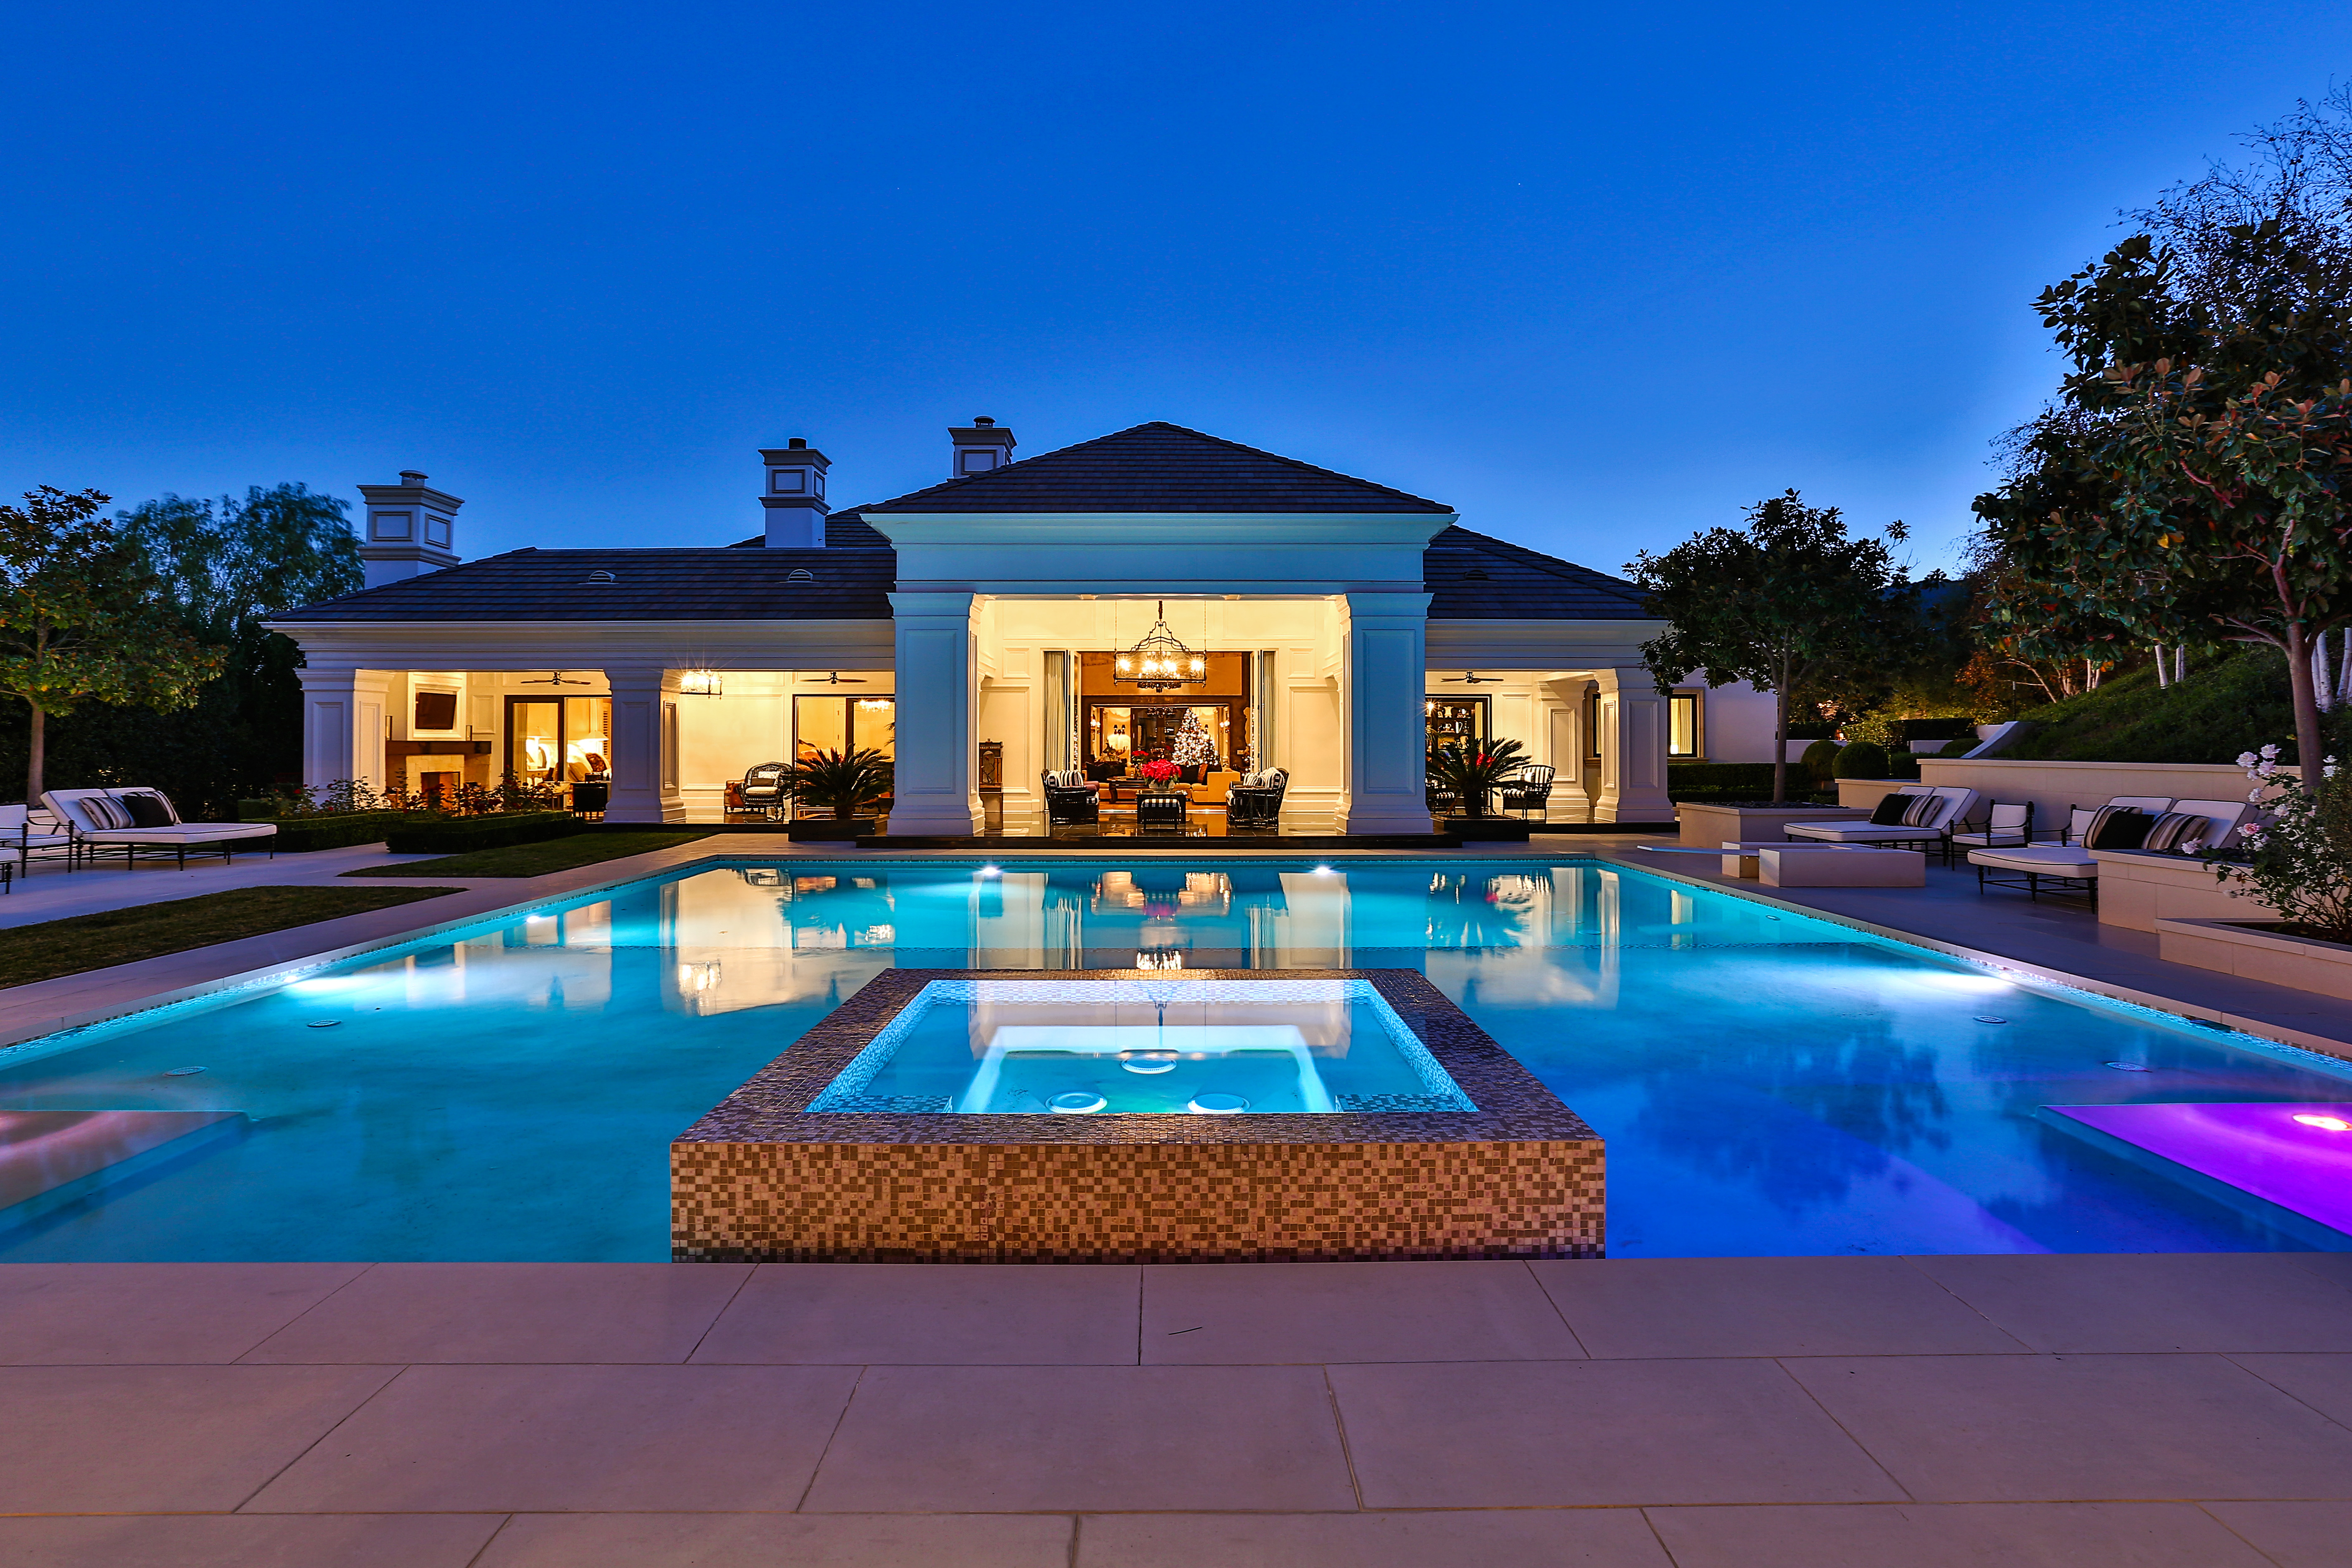 Wayne Gretzky S Hotel Of An Estate Sells For 6 Million Rismedia 39 S Housecall